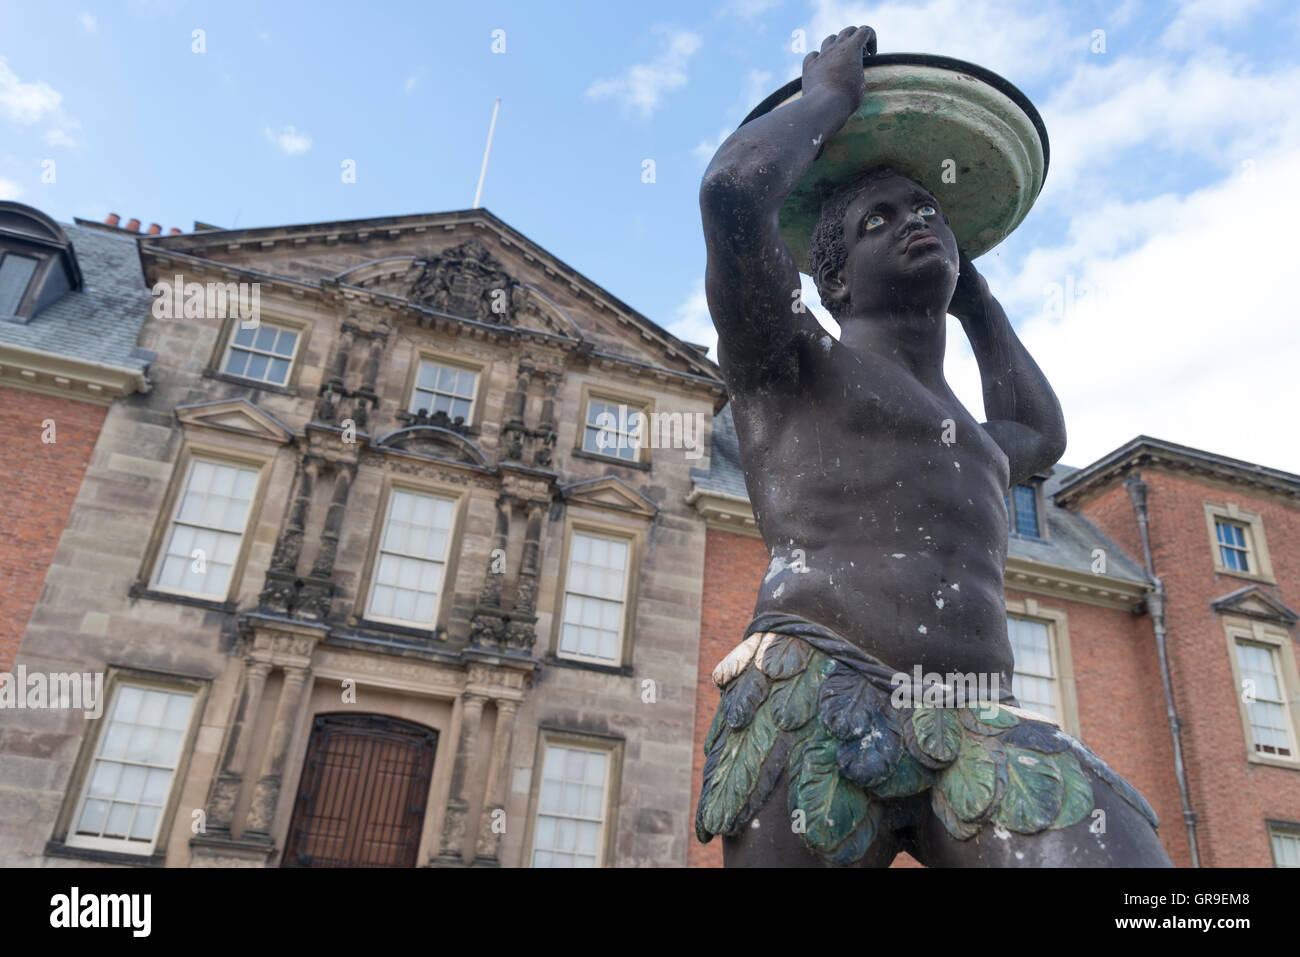 Statue of African Moor outside of Dunham Massey Hall an English country house / stately home in  Trafford, Altrincham, - Stock Image